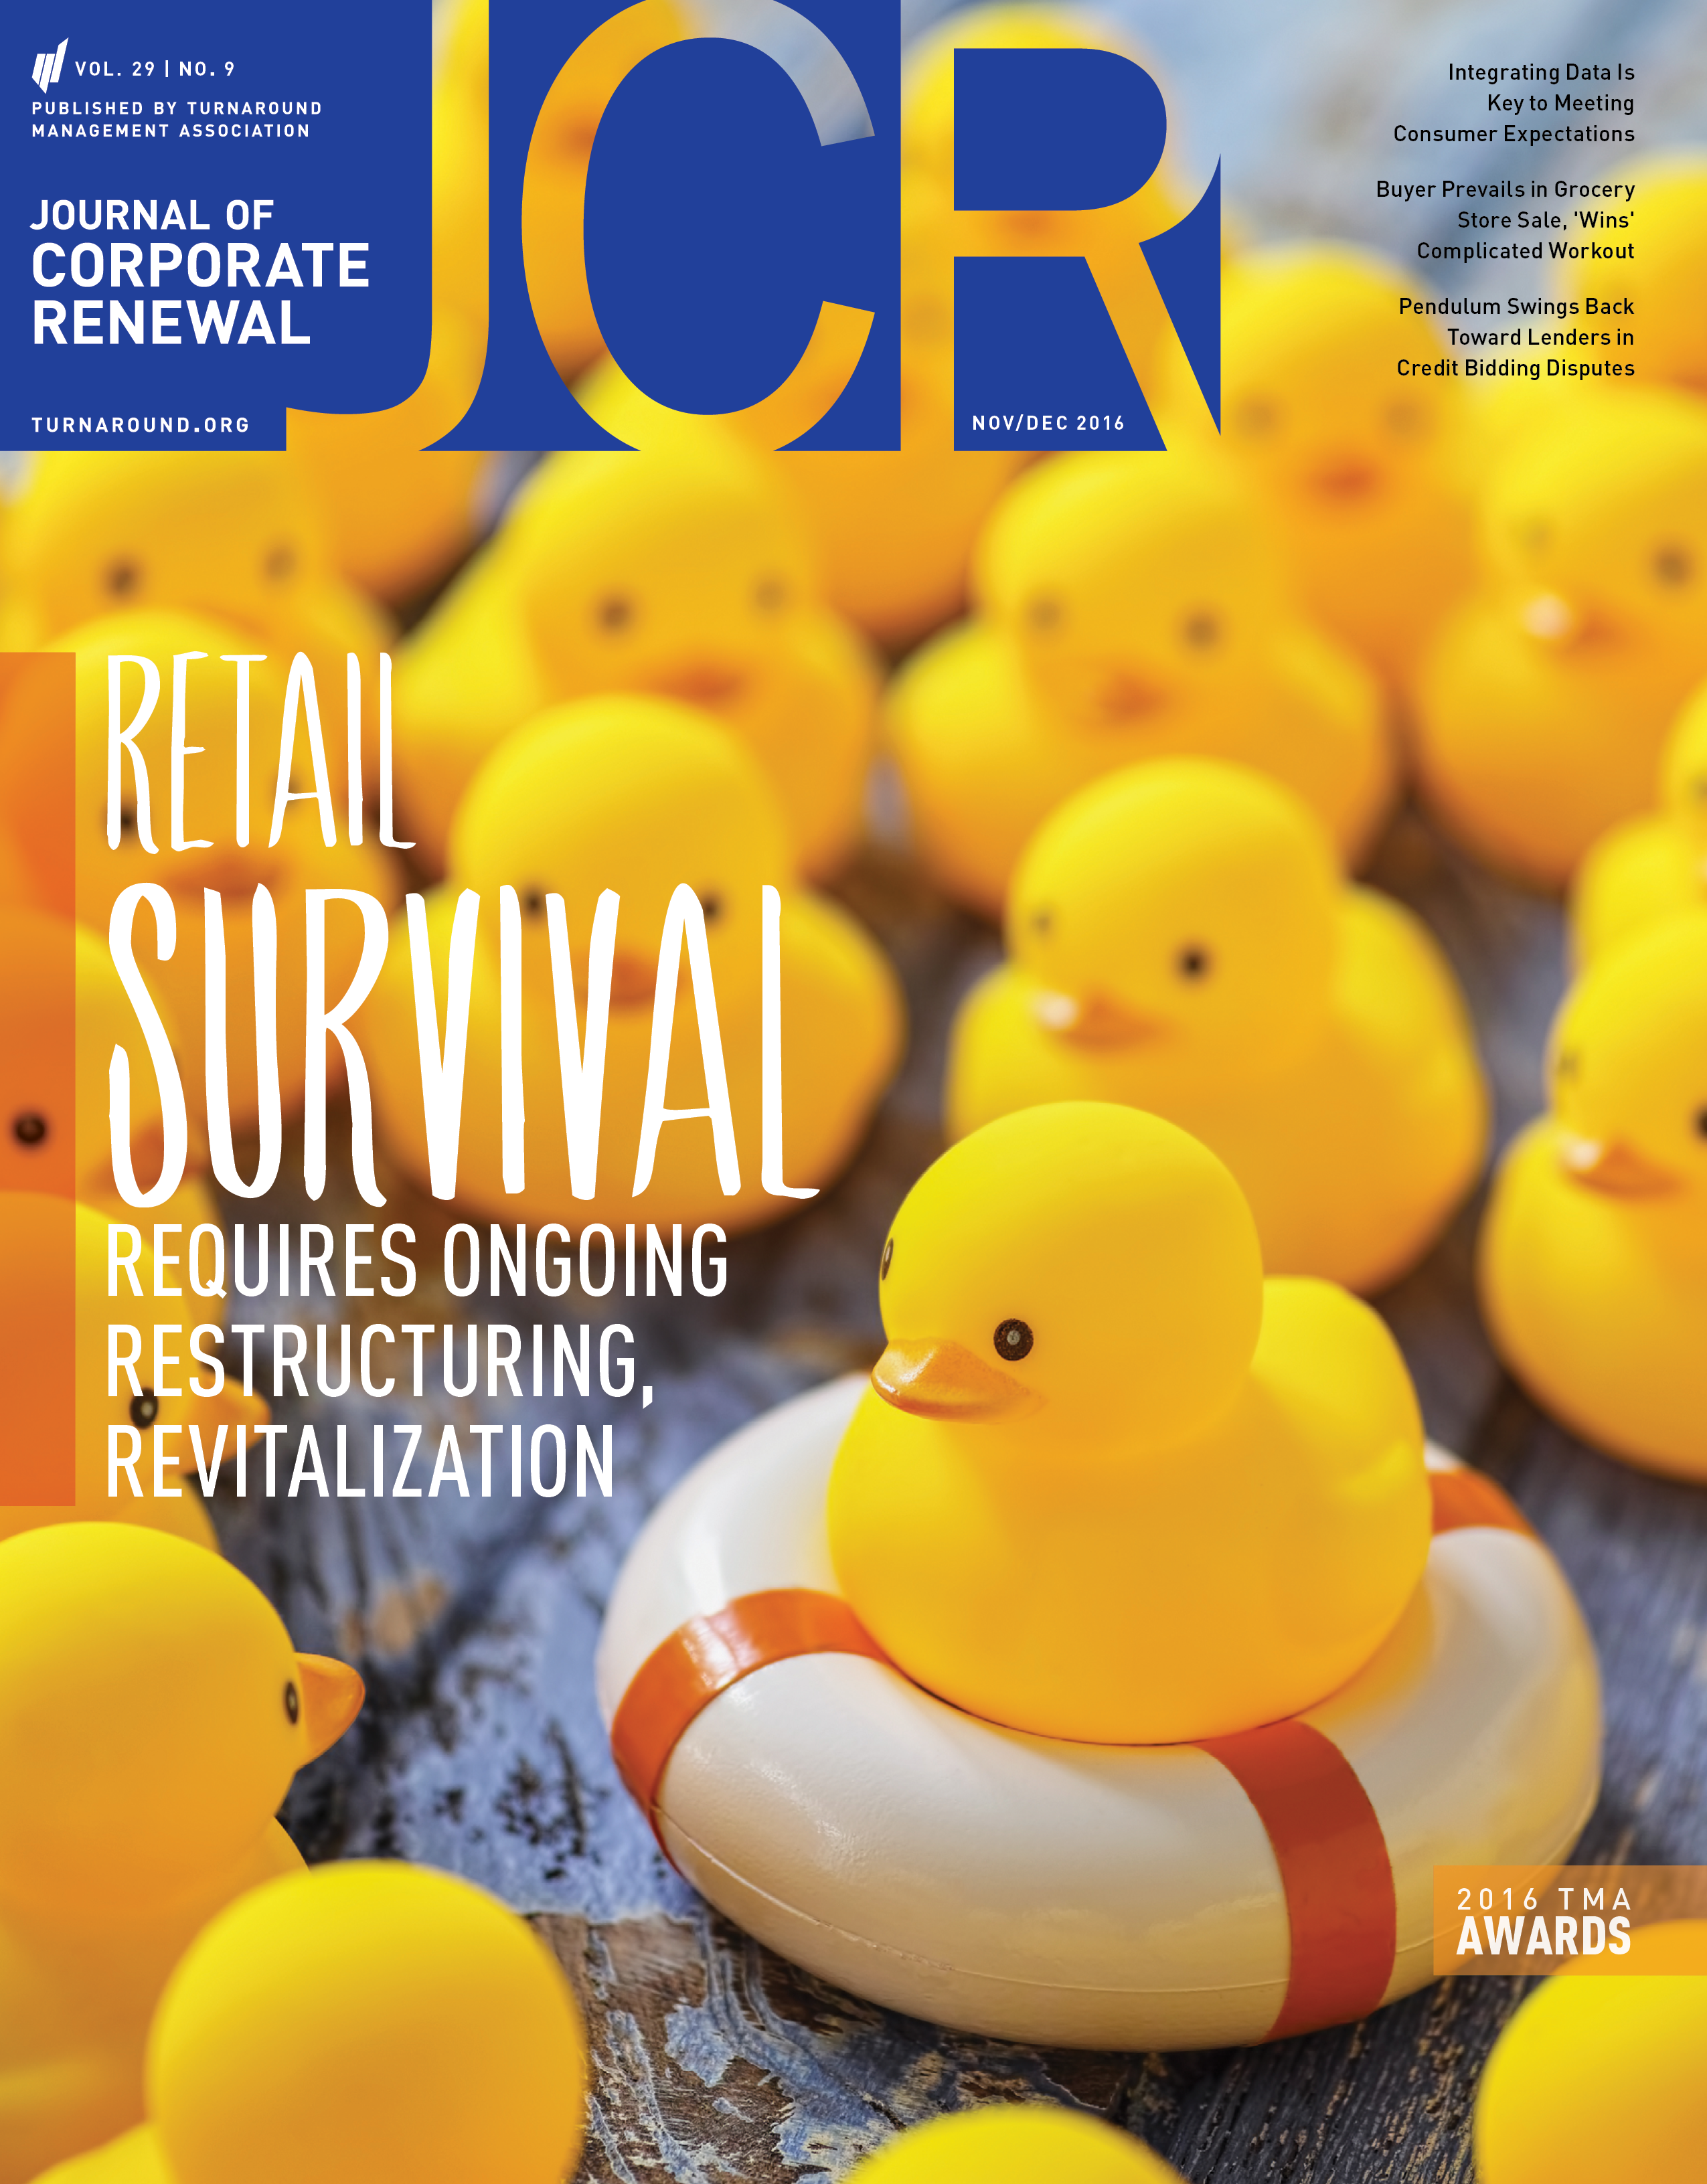 November/December 2016 Journal of Corporate Renewal